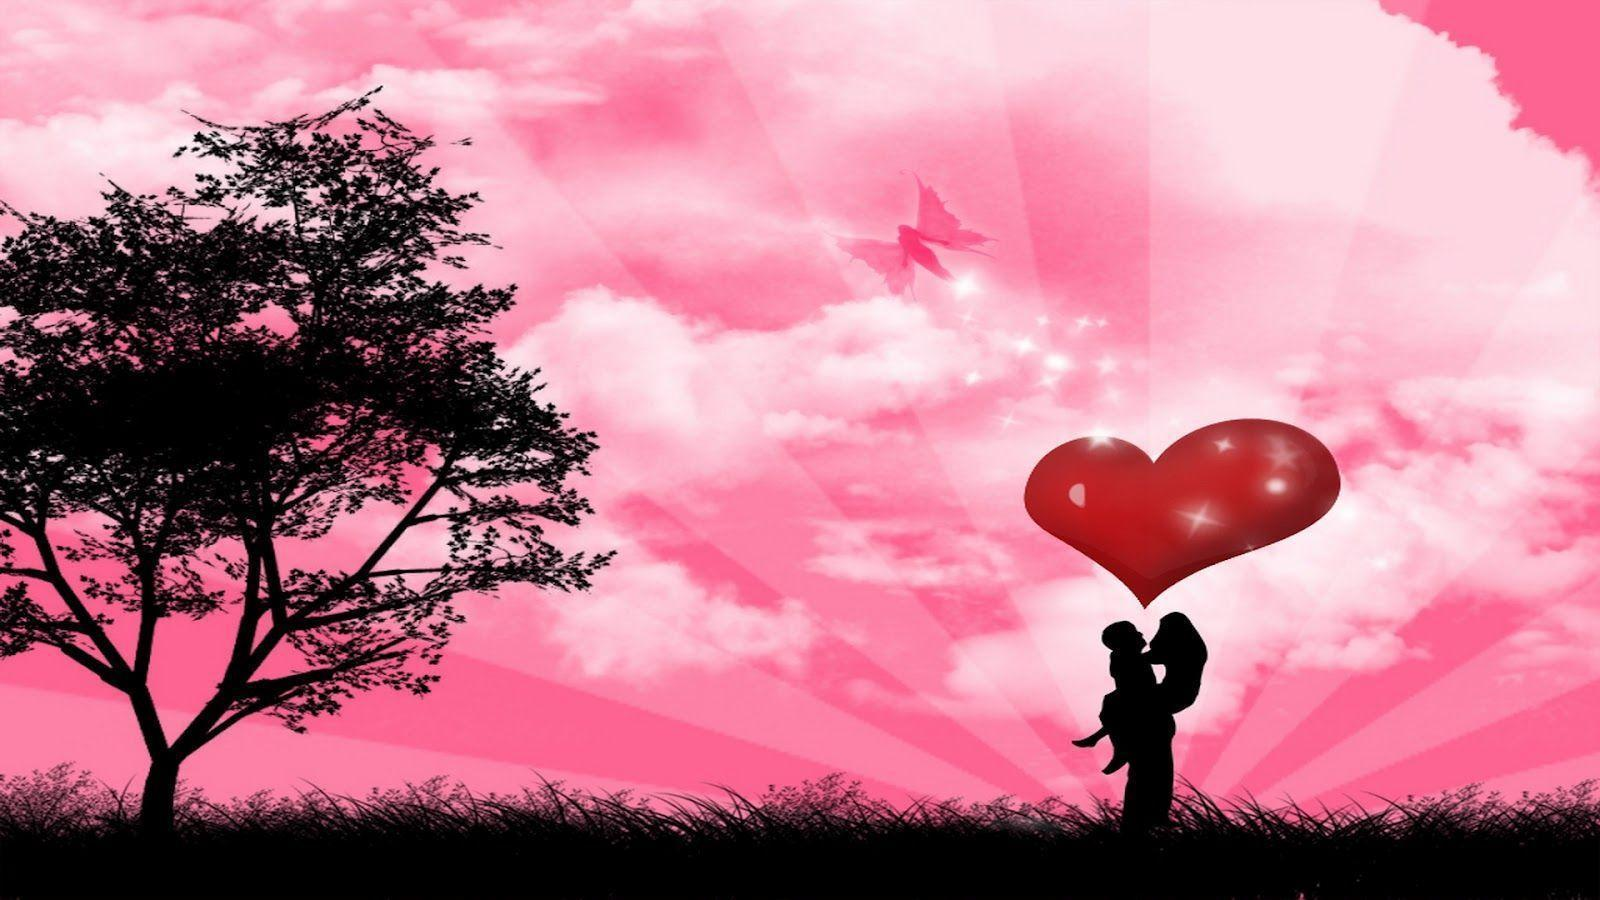 Love Wallpaper In Romantic : Love Romantic Wallpapers - Wallpaper cave